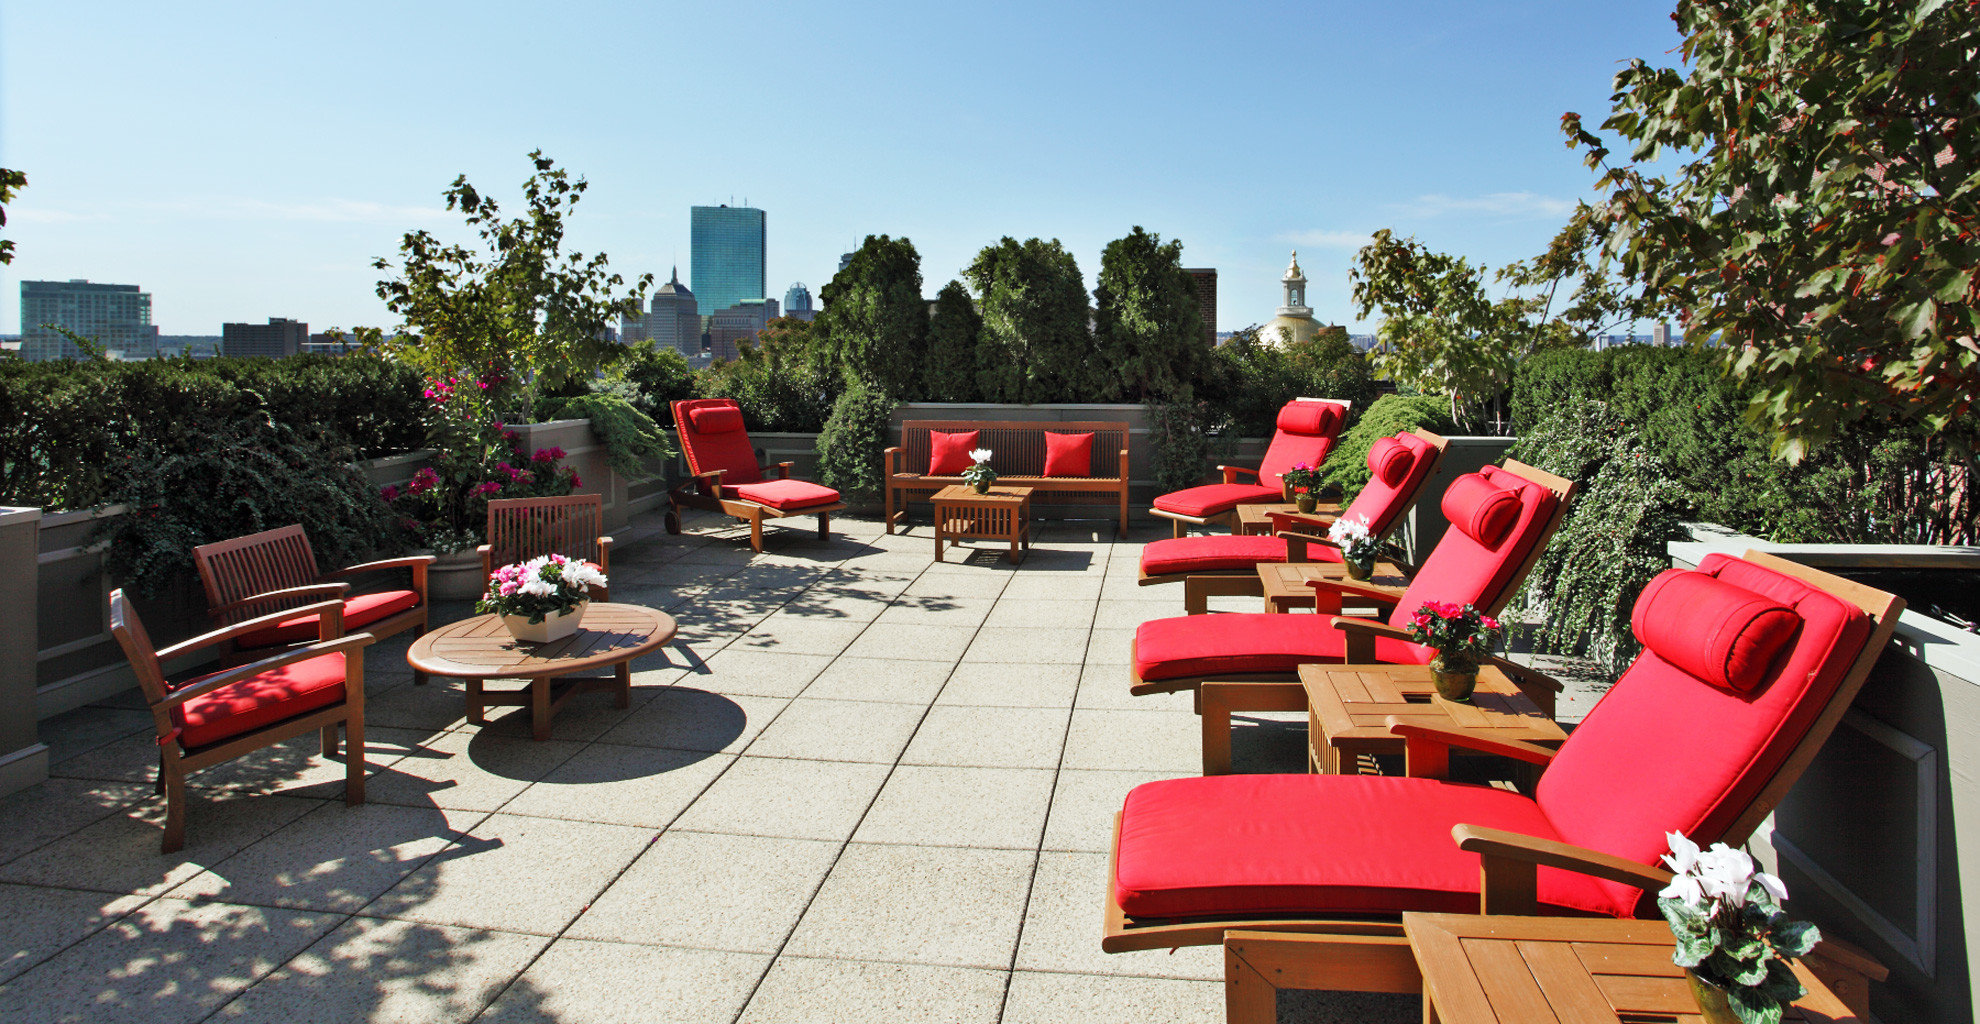 Architecture Buildings Business Exterior Grounds Historic Landmarks Lounge Luxury Modern Outdoor Activities Outdoors Romantic Rooftop Scenic views tree sky leisure chair property red Resort backyard cottage arranged